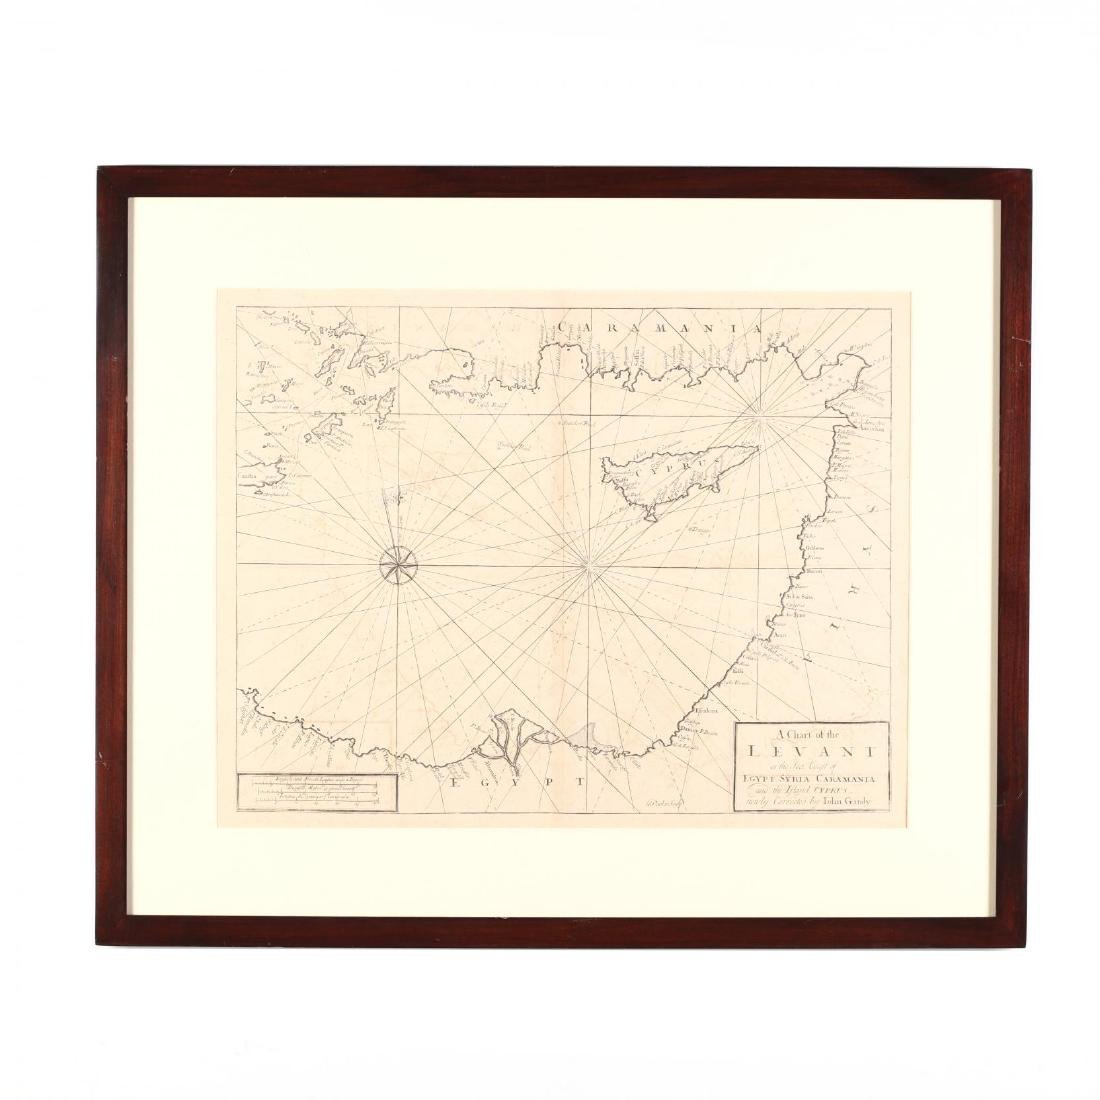 18th Century English Sea Chart of the Eastern